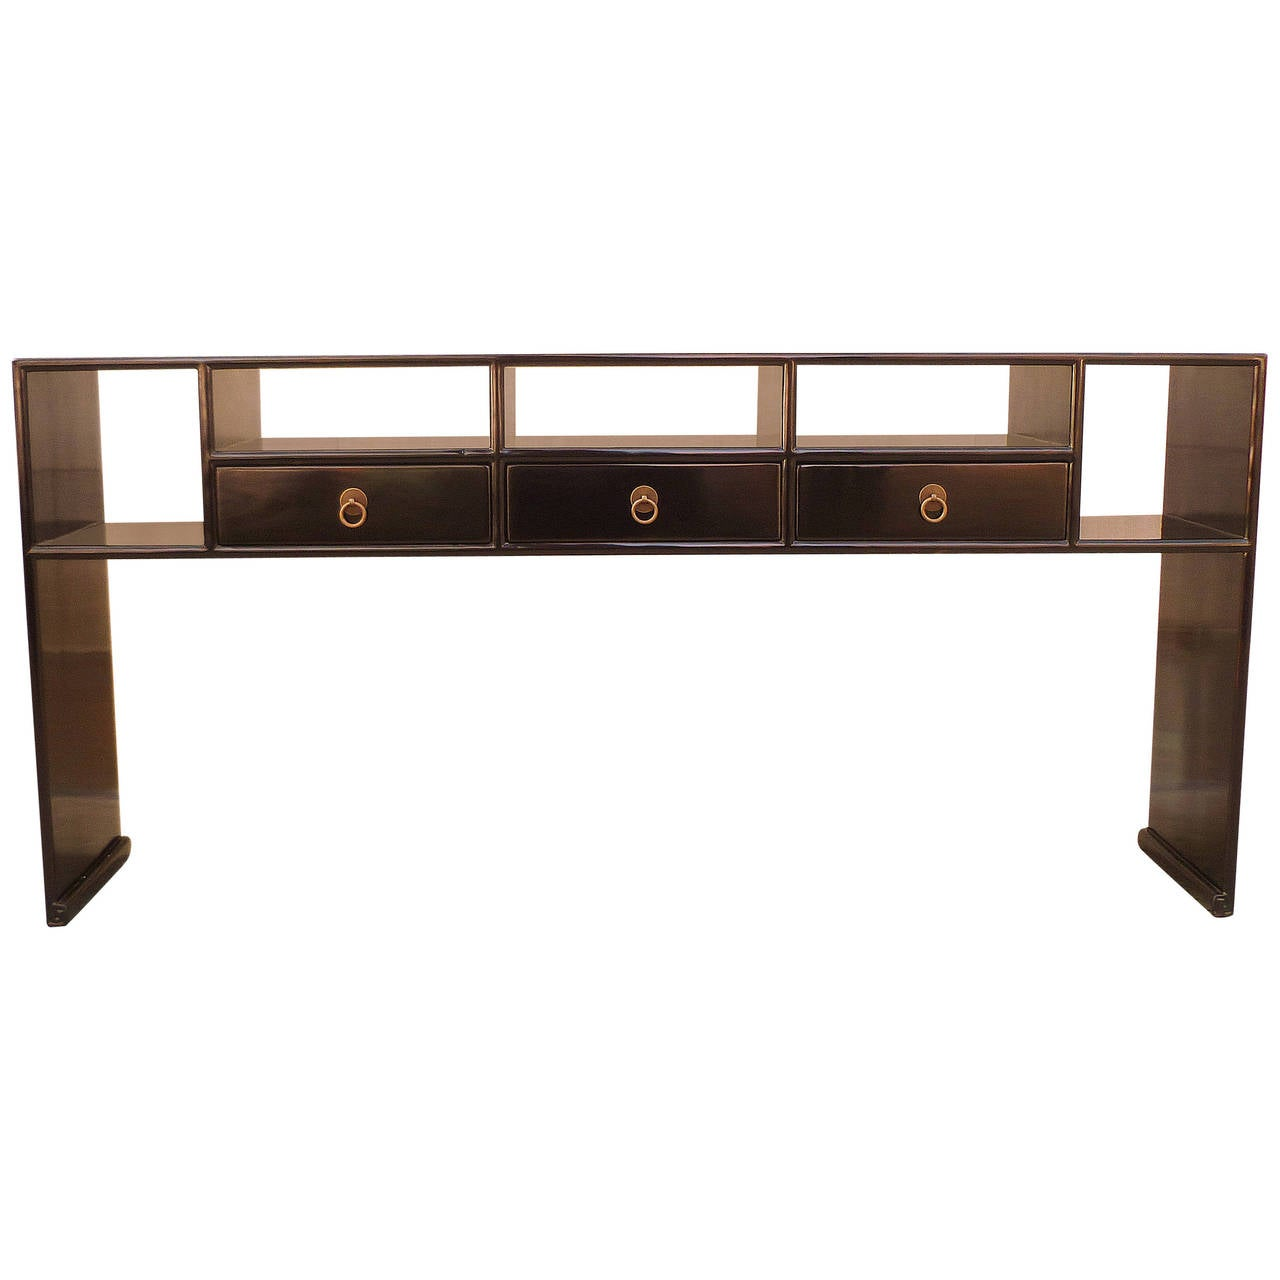 Black Lacquer Console Table With Shelves And Drawers At 1stdibs. Full resolution  img, nominally Width 1280 Height 1280 pixels, img with #8E613D.